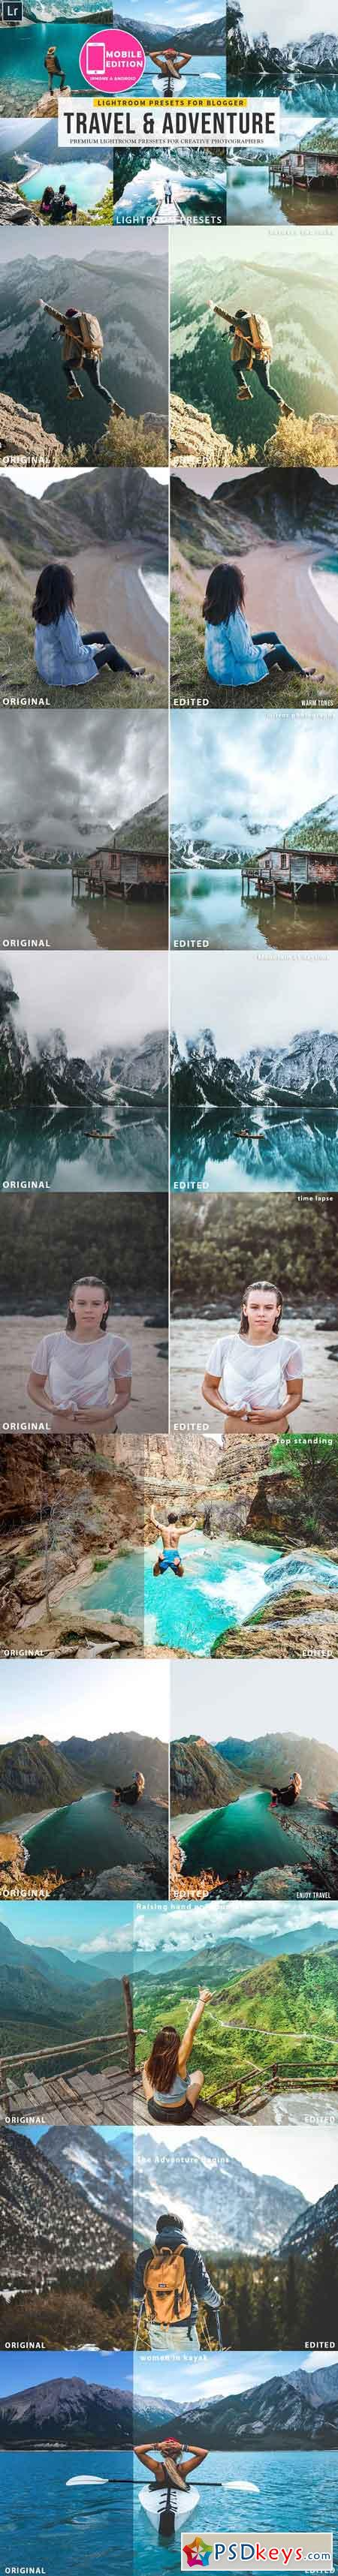 Travel & Adventure Lightroom presets 2968102